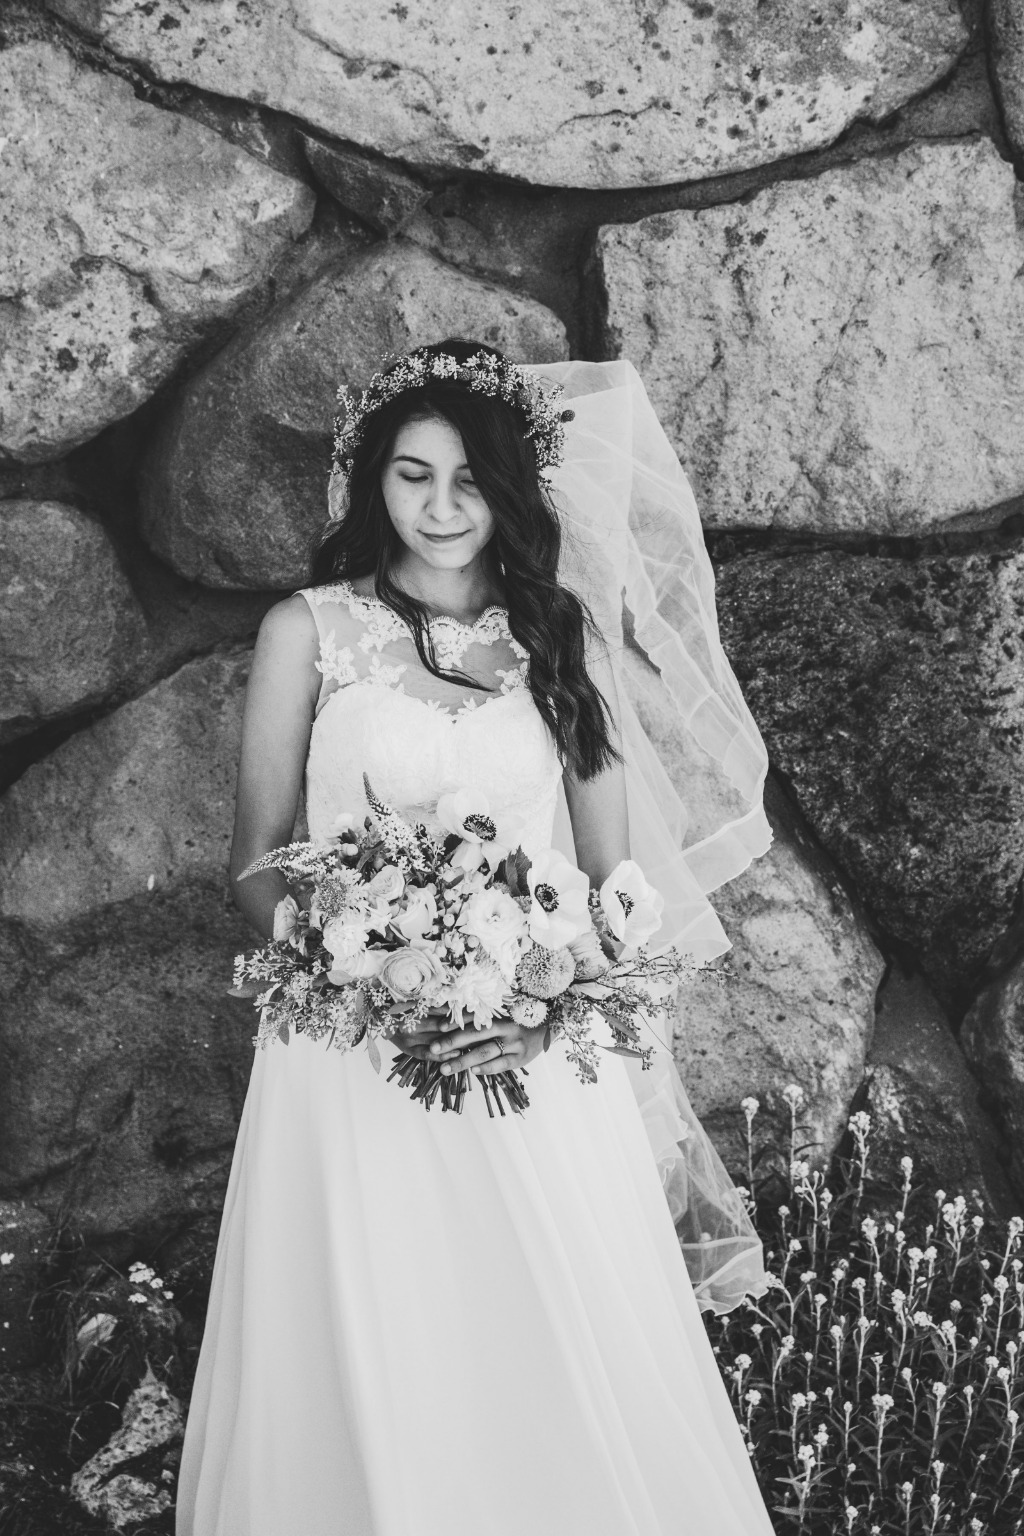 Float down the aisle in our beautiful Macaria wedding dress. ✨😍 | Photo by Jen S. Media